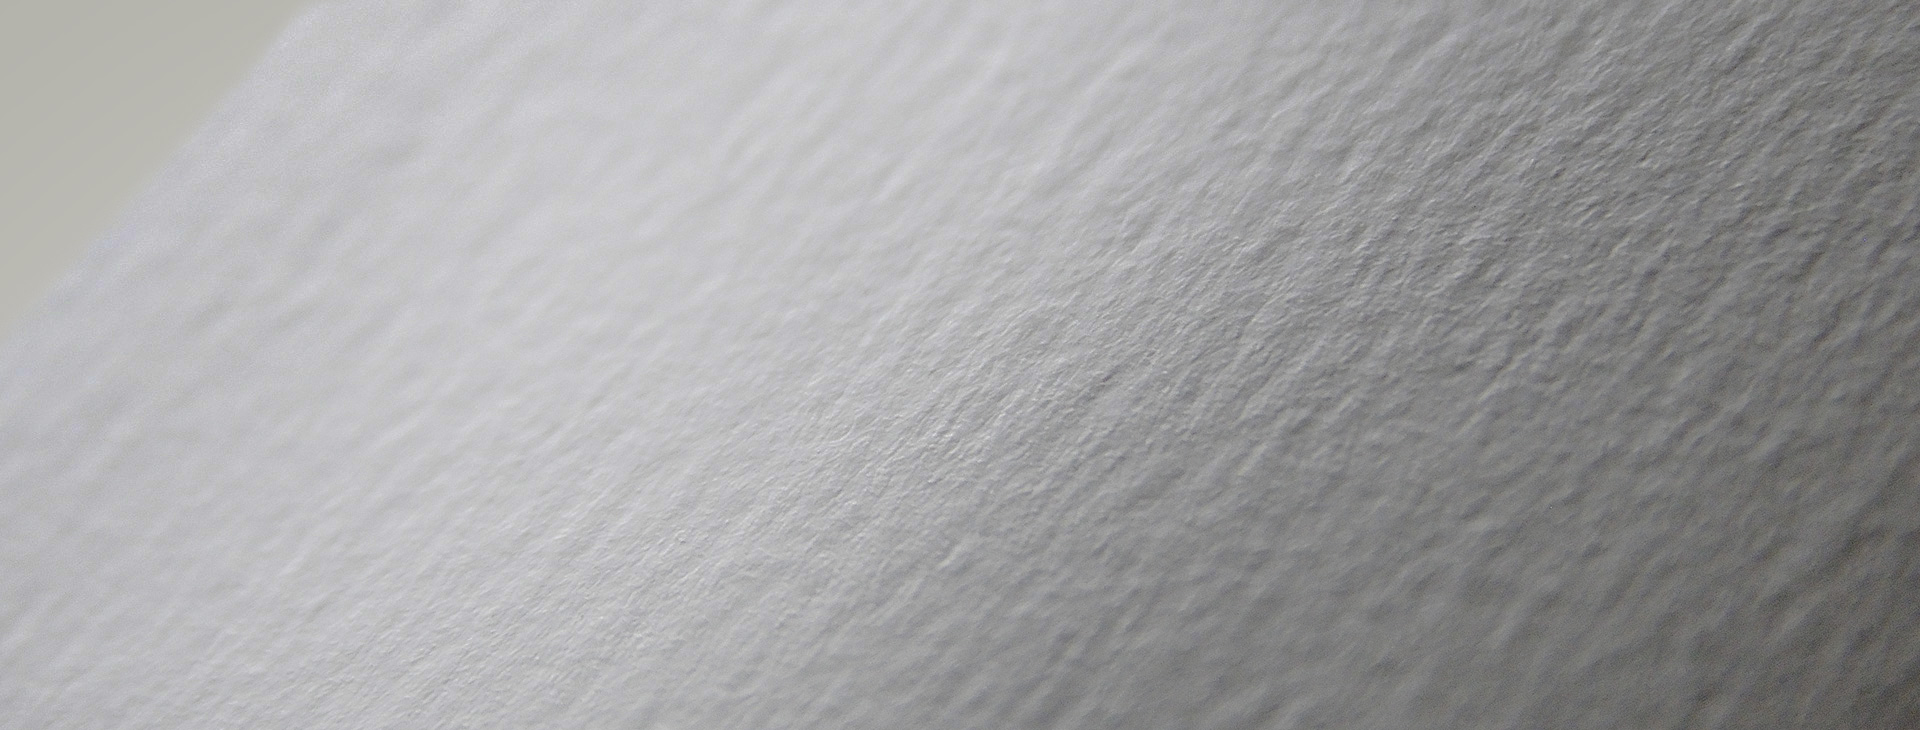 paper background